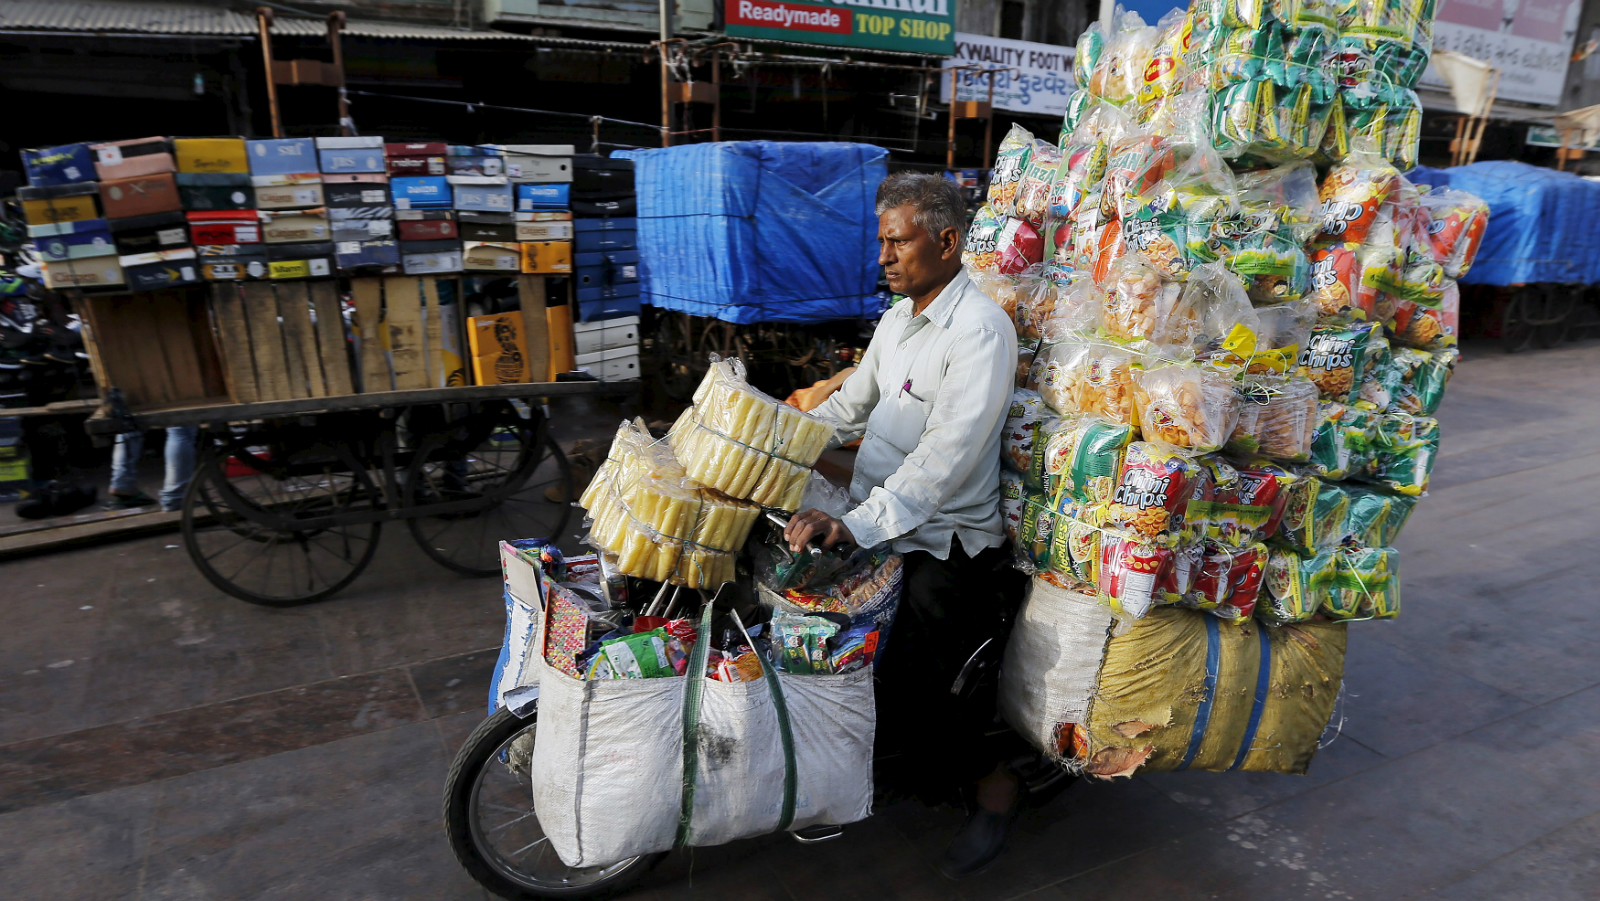 Moped sales dwindle as Indians go for motorbikes — Quartz India